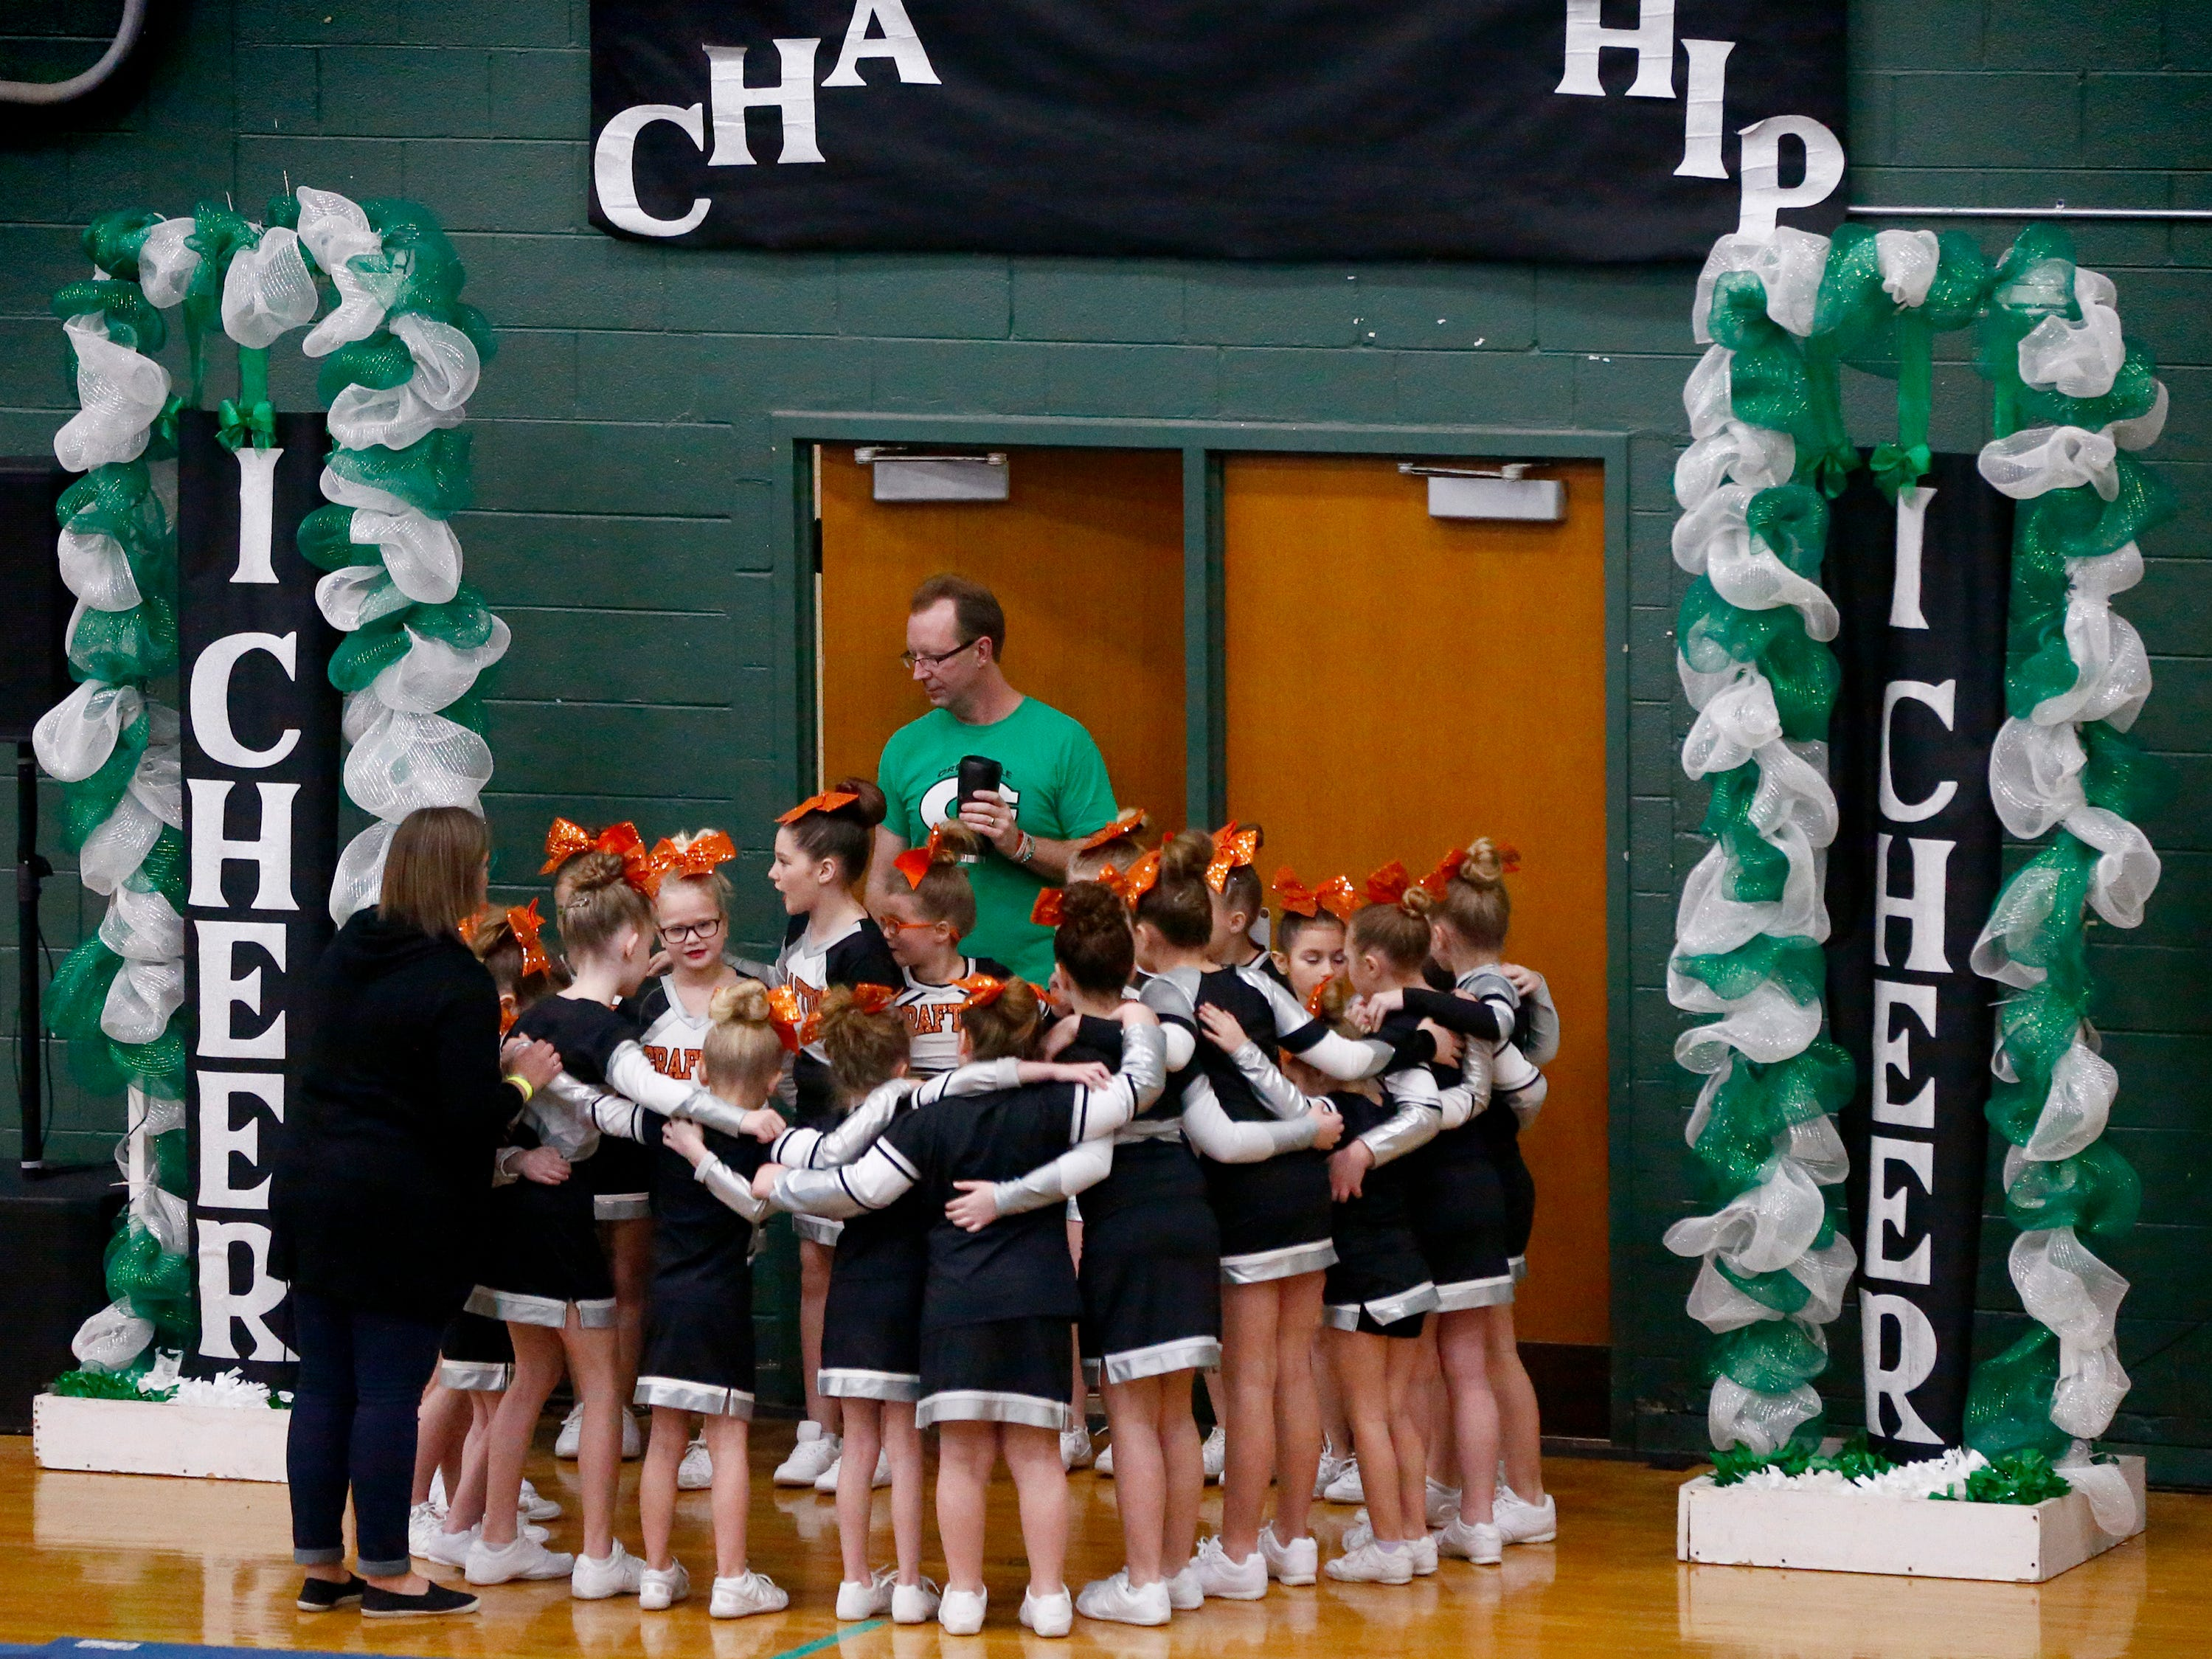 The Grafton Youth team huddles up before taking the mat to compete in the Elementary D1 division during the iCheer Competition at Greendale High School on Jan. 26.